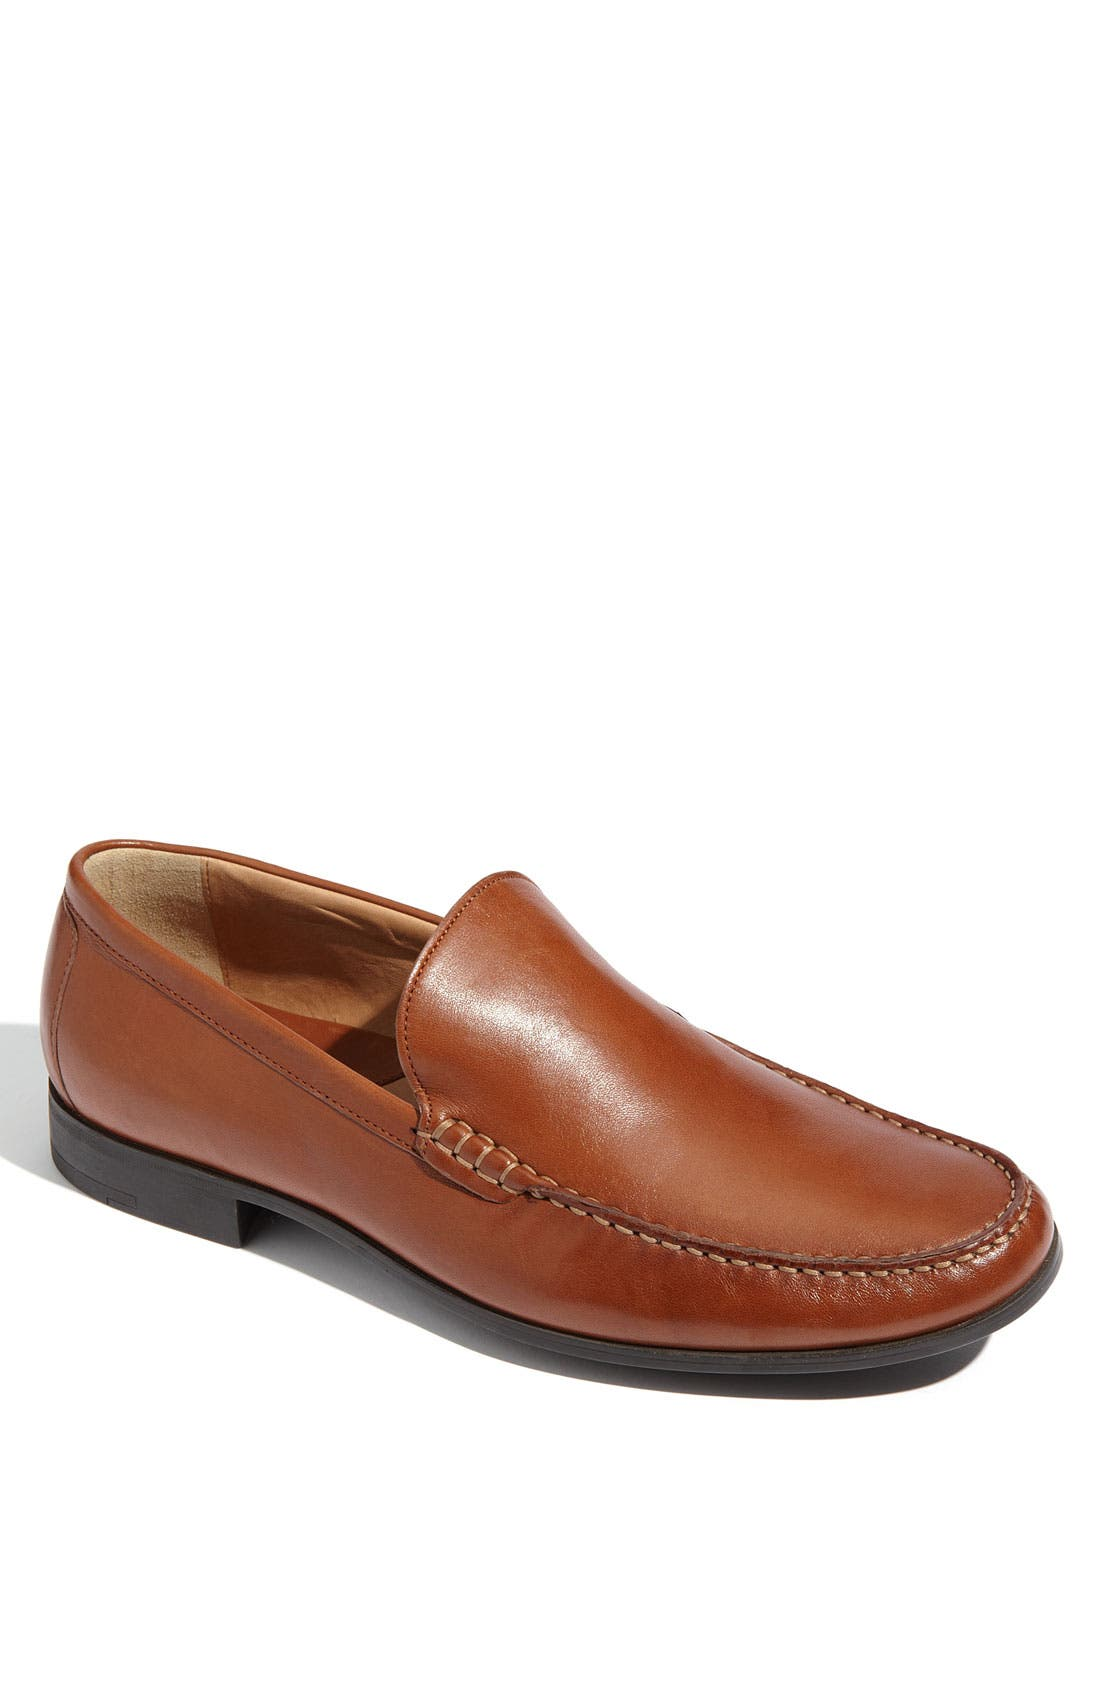 JOHNSTON & MURPHY 'Creswell' Venetian Slip-On, Main, color, COGNAC